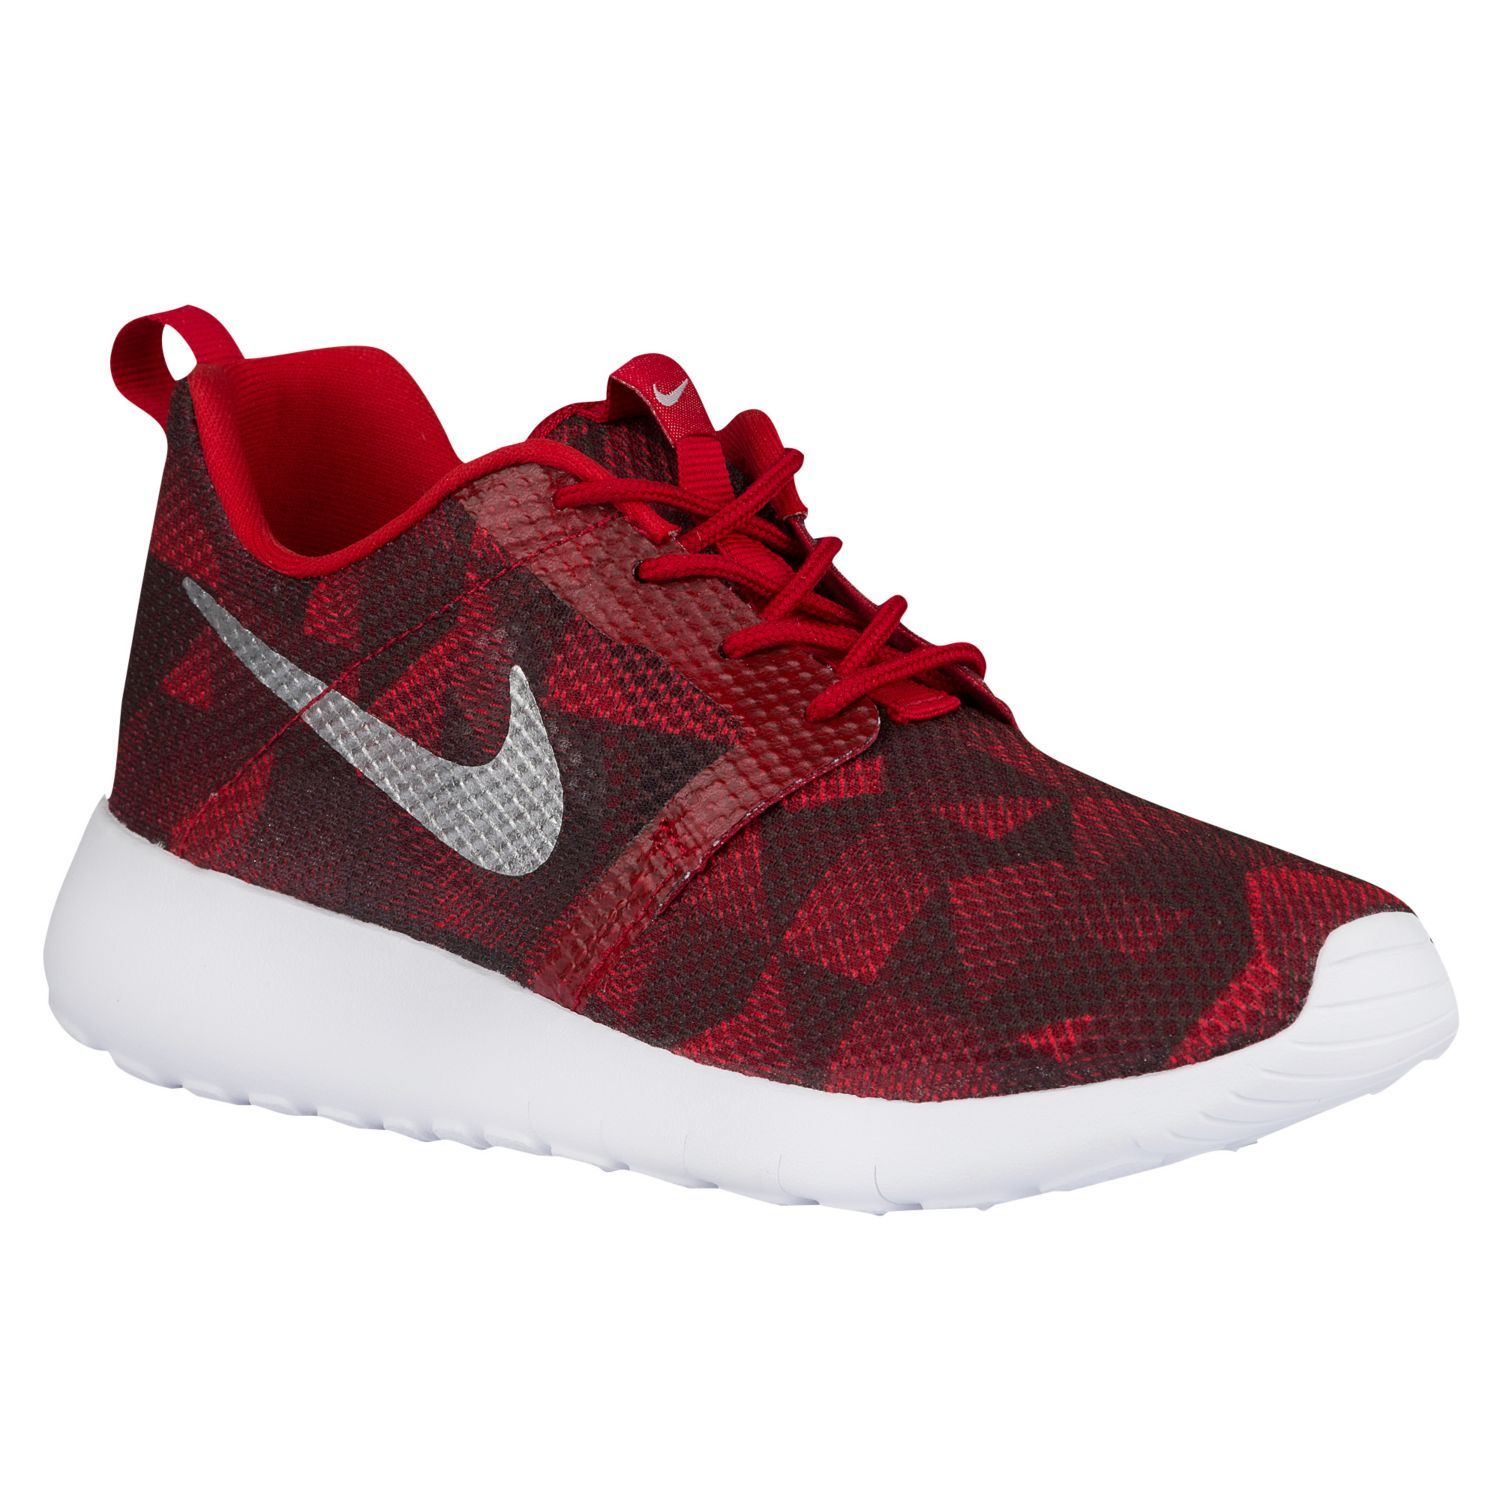 7b1461969 ... hot nike roshe one flight weight boys grade school running shoes gym  44f34 ecf9b